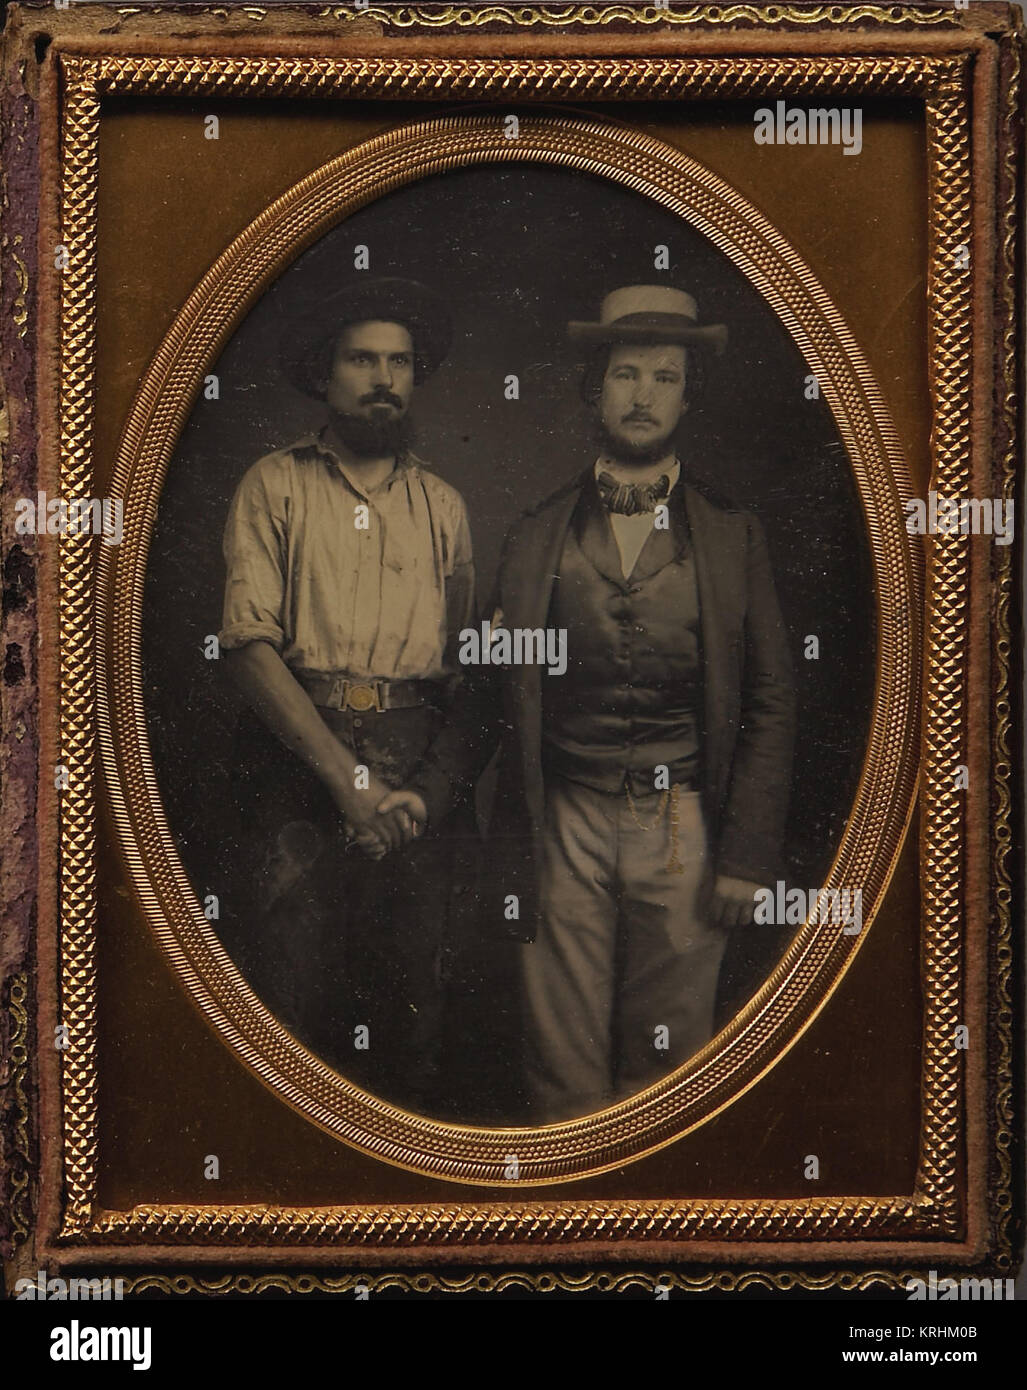 California 'Gold Miner' & Prominent Western Gold Rush Gentlemen Ca. 1850S - Stock Image